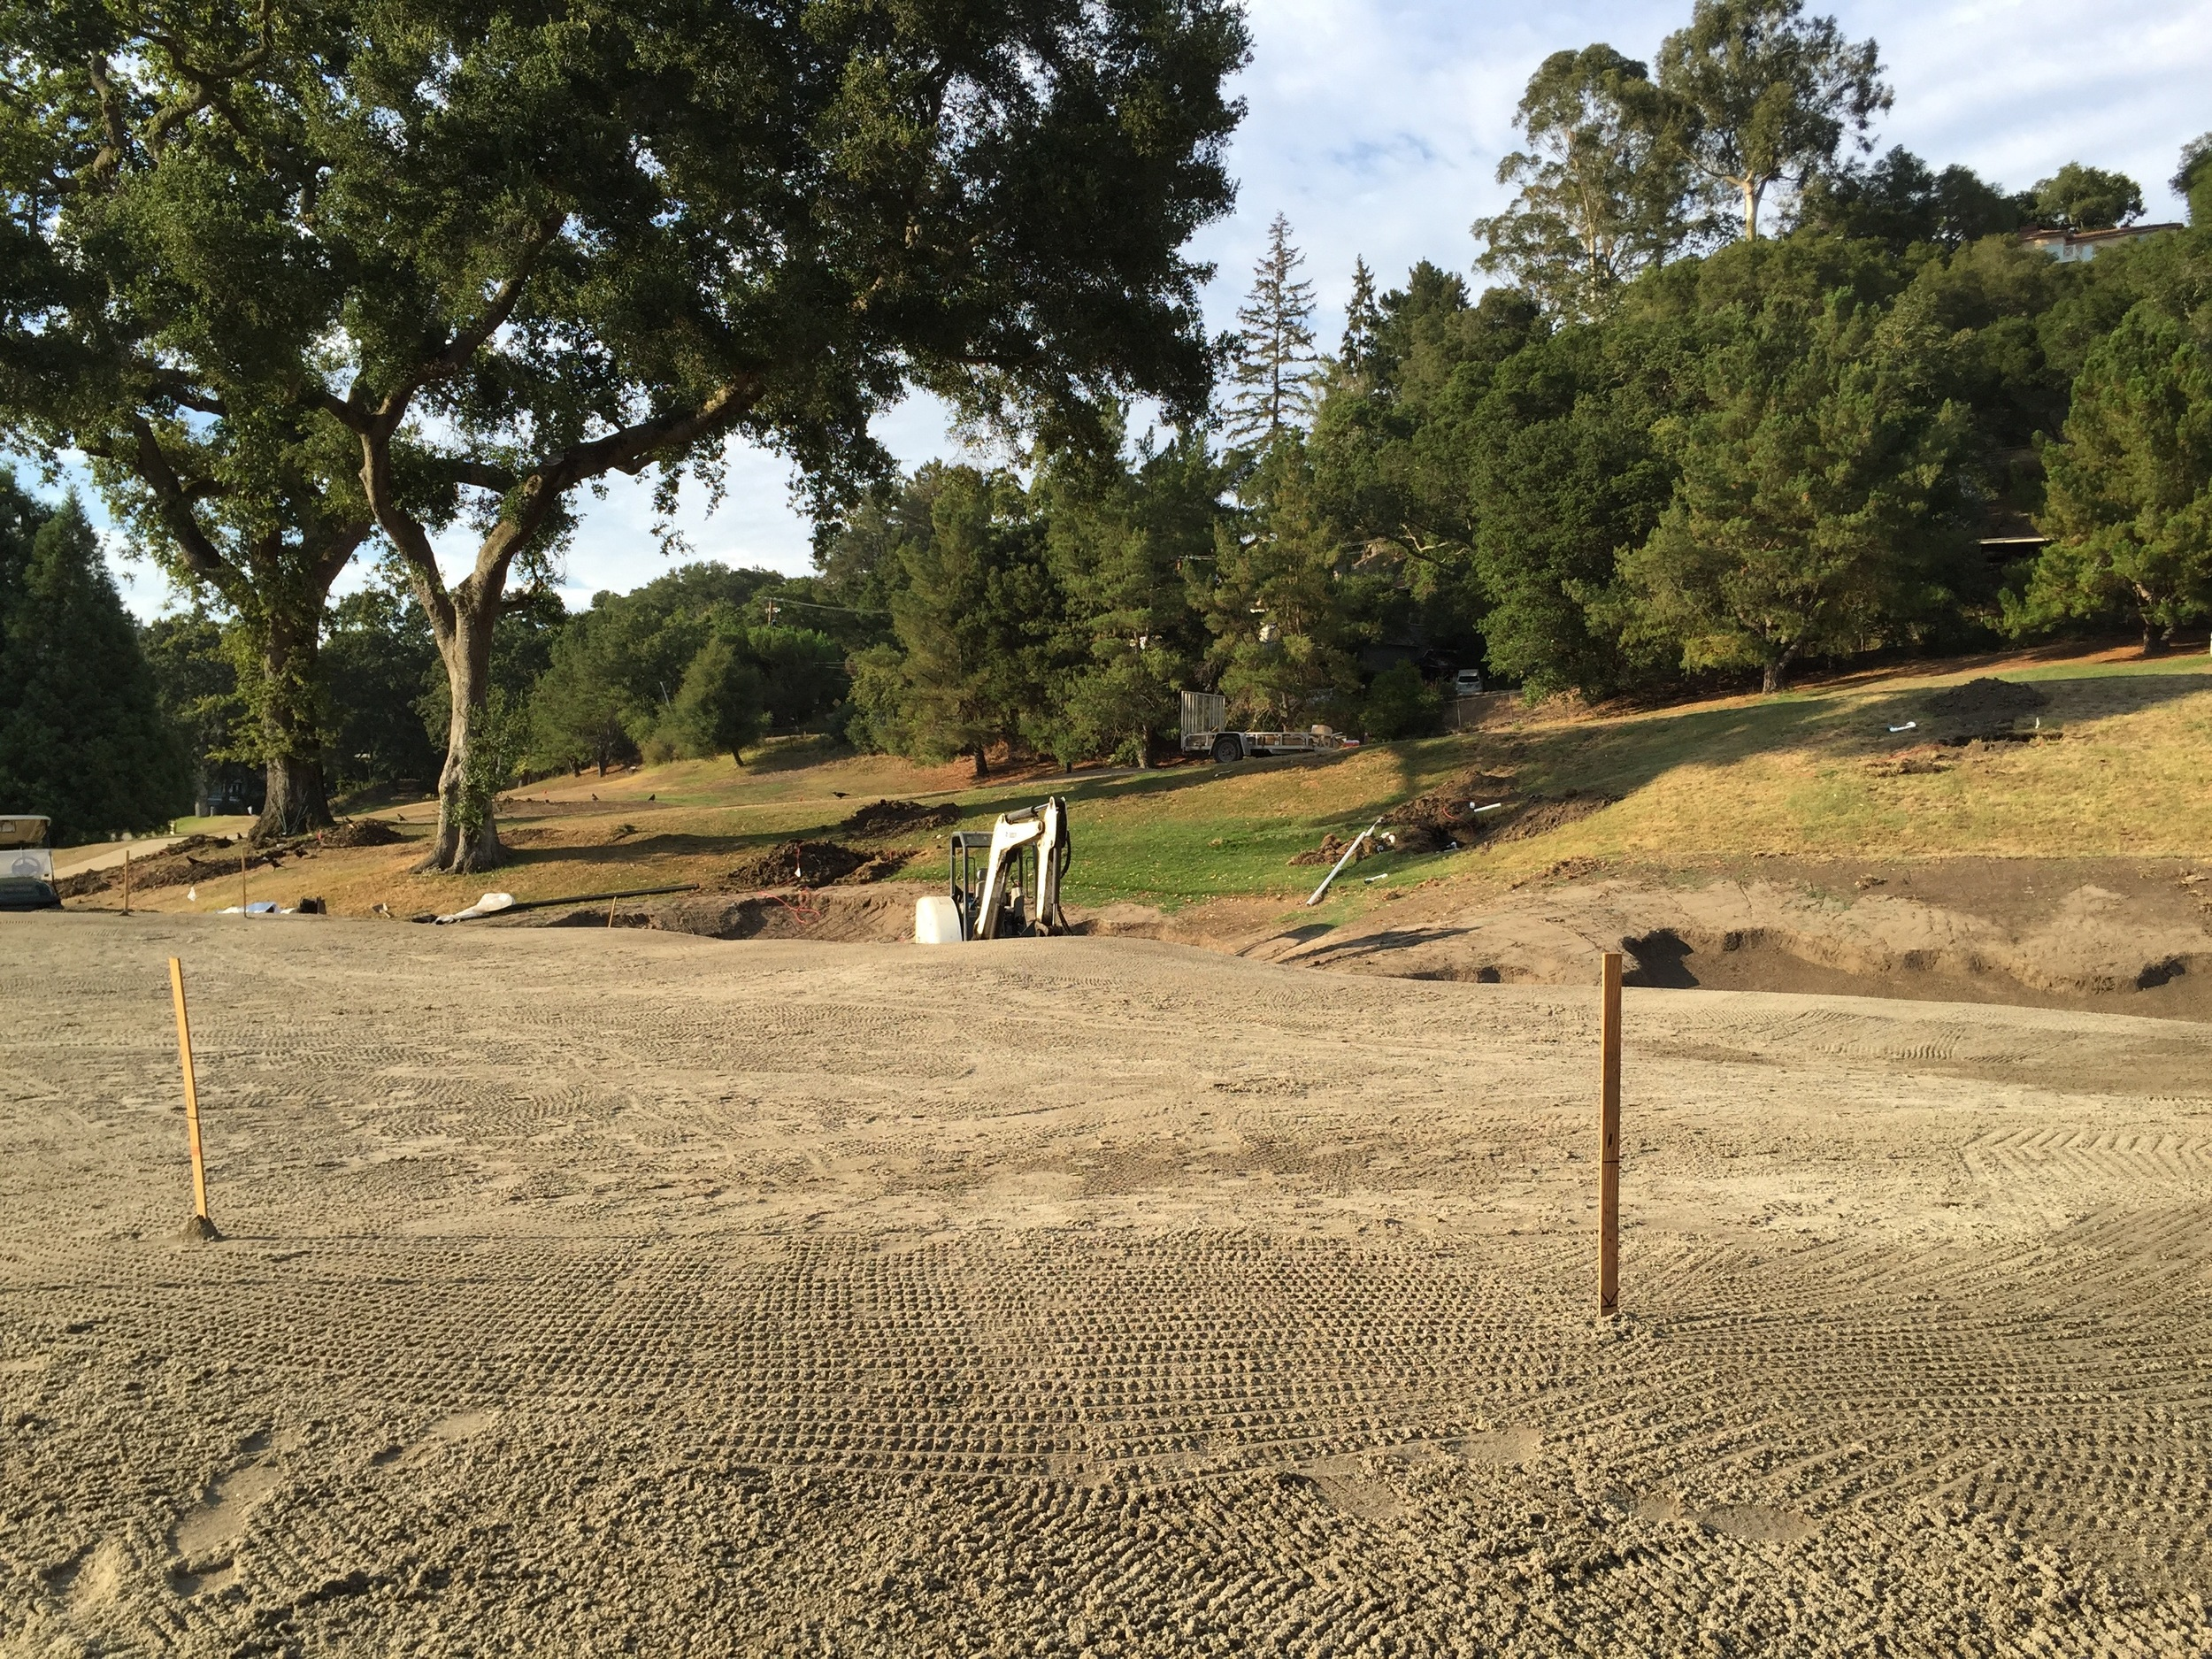 hochstein-design-orinda-cc-hole-8-construction-12.jpg